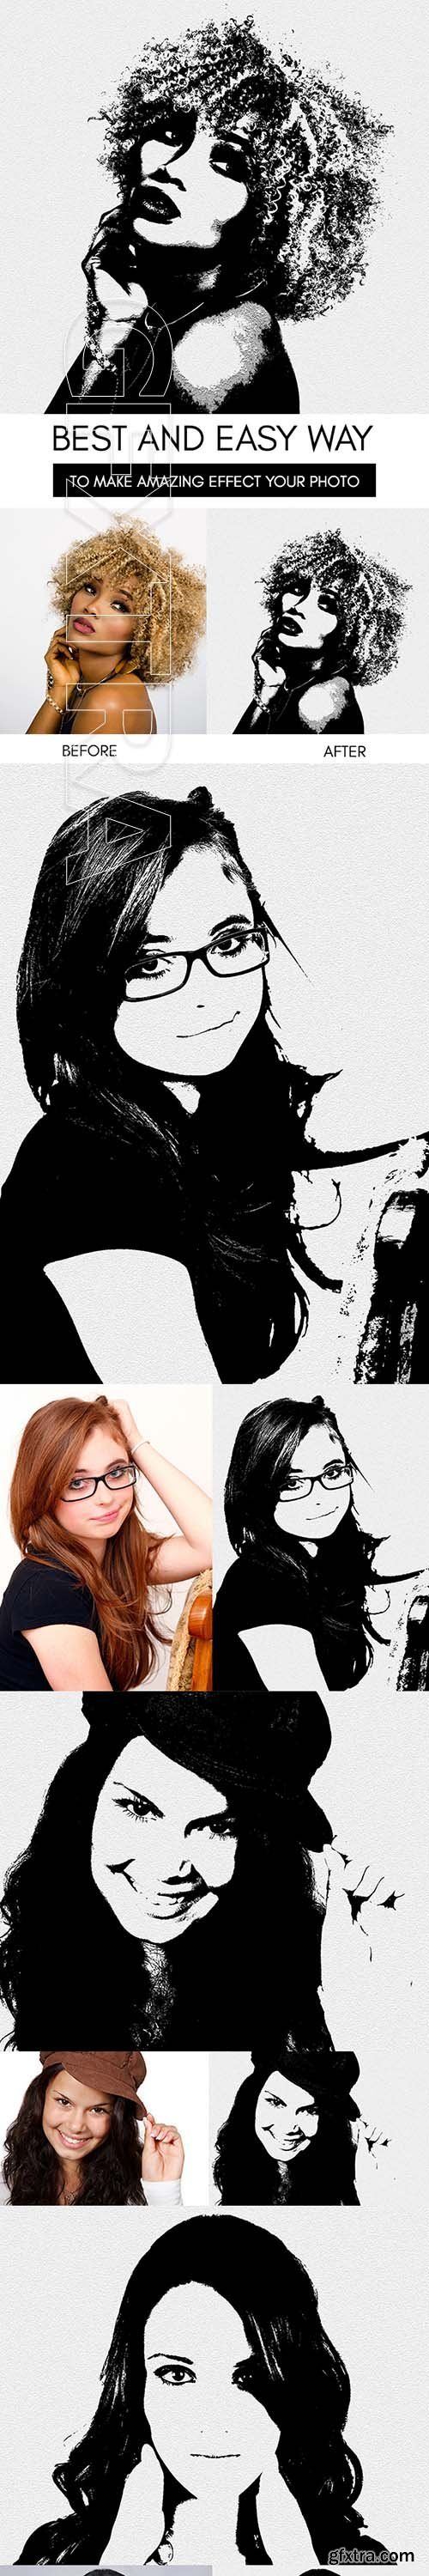 GraphicRiver - Note Paper Sketch Photoshop Action 22423821